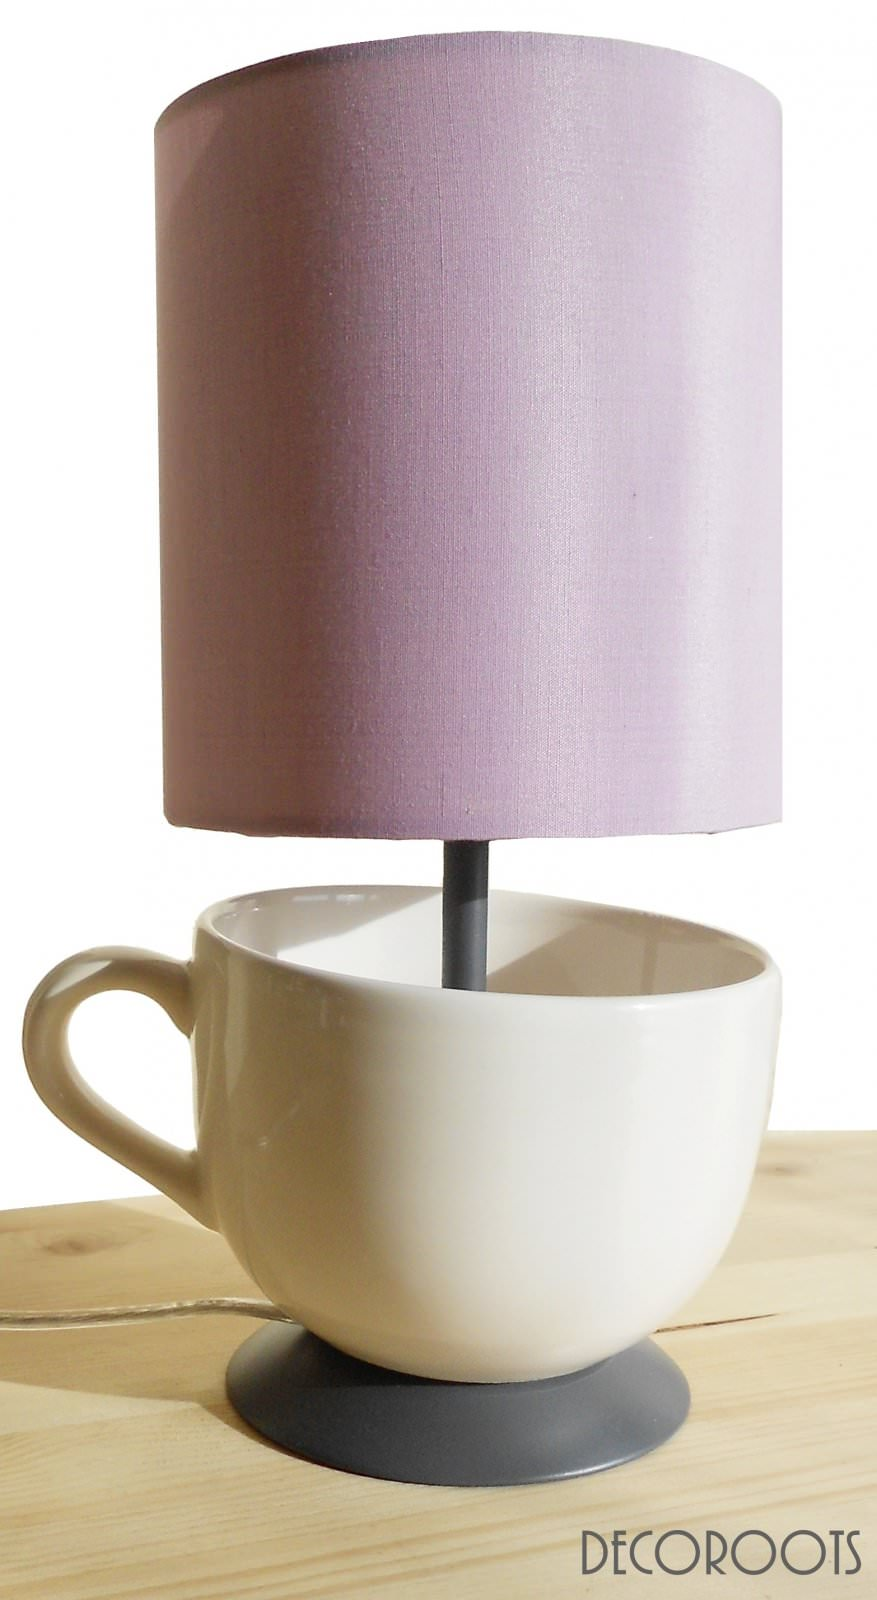 Lampe design tasse un peu de th design contemporain for Lampe de cuisine